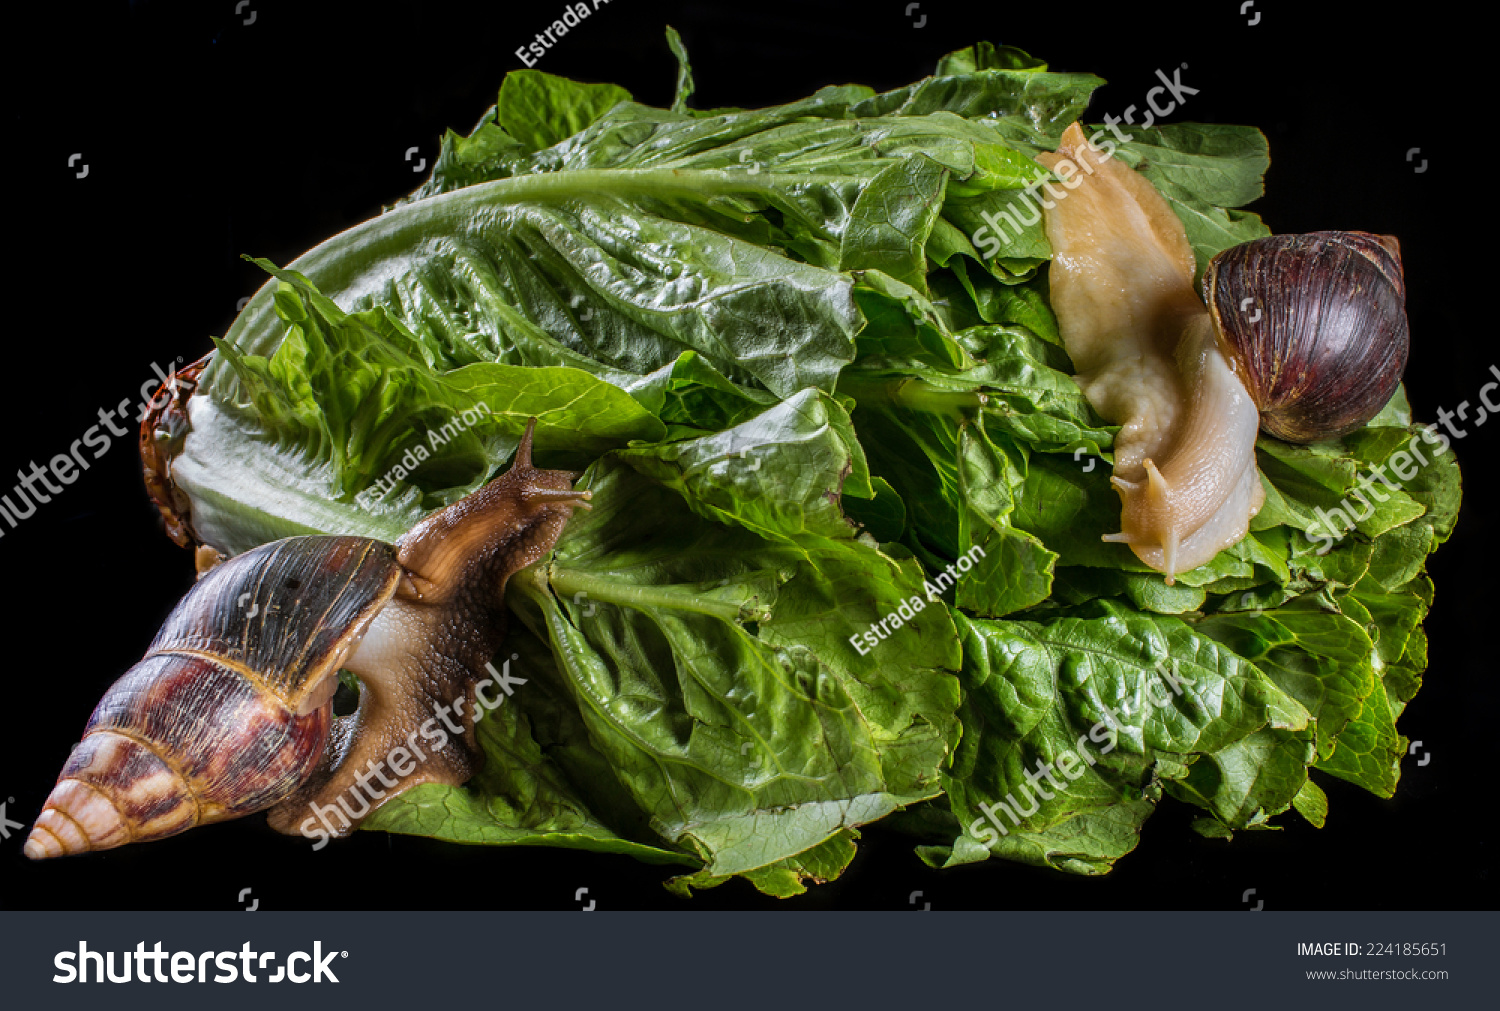 Giant african land snail eating - photo#14